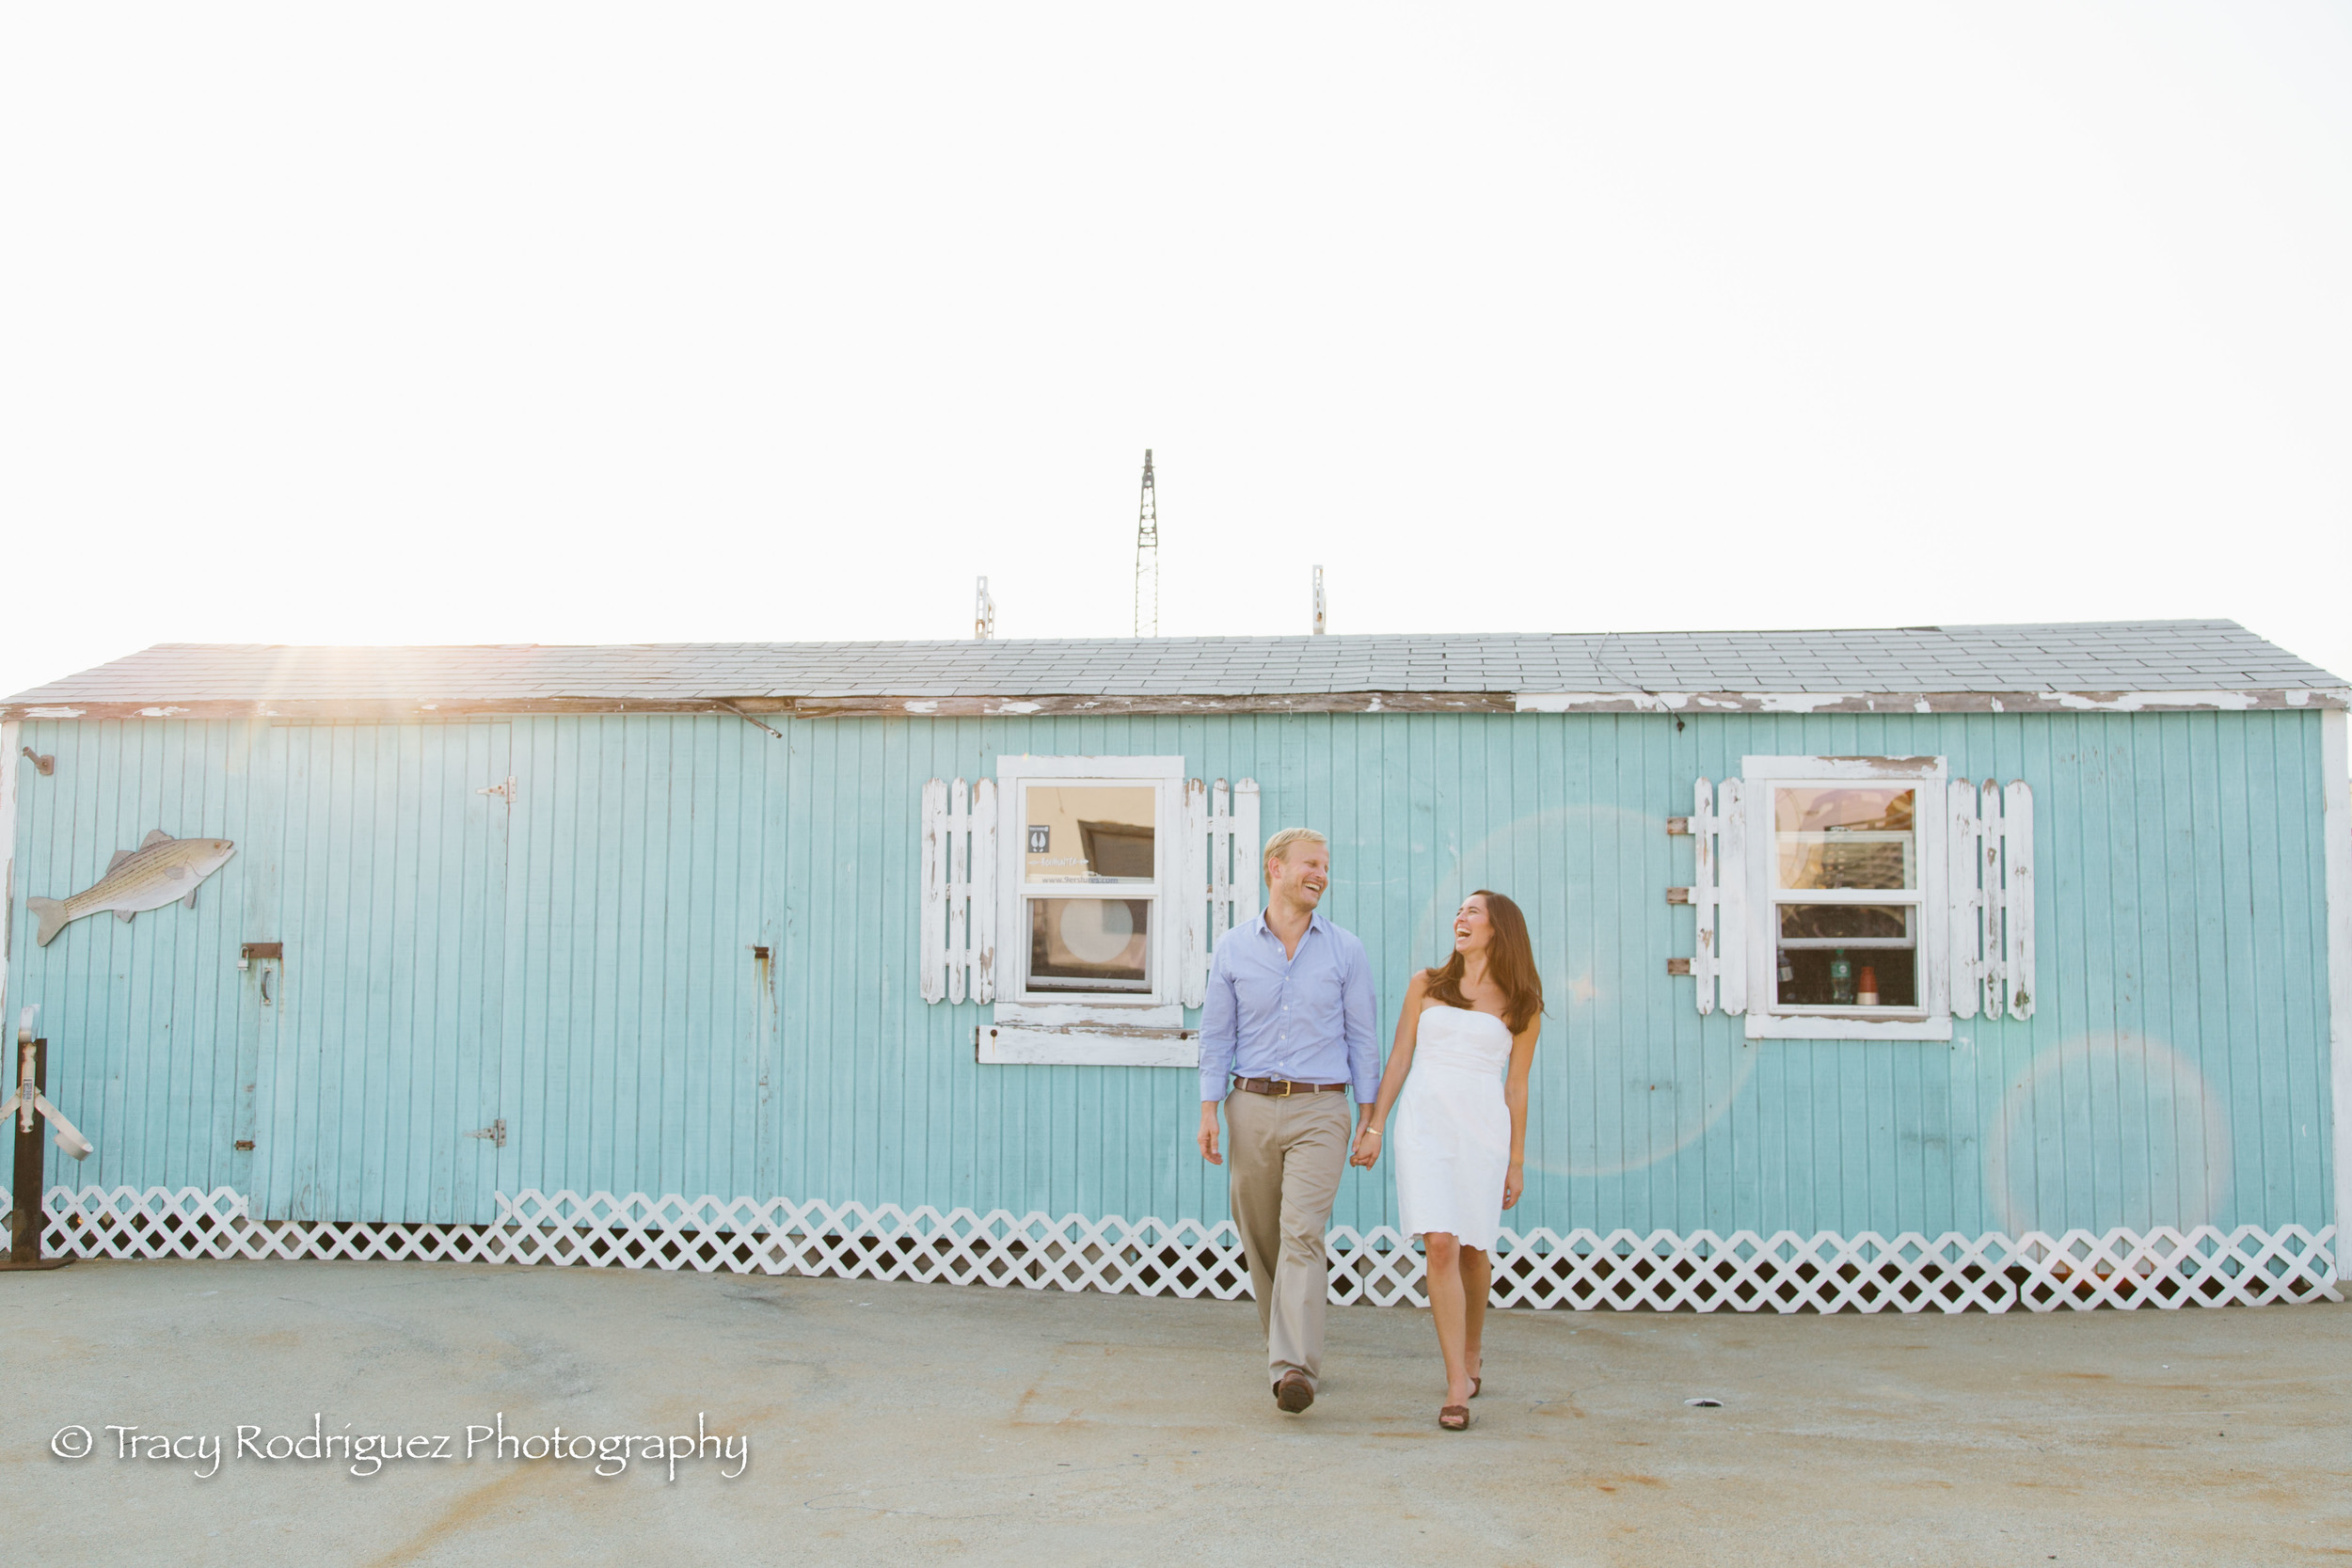 TracyRodriguezPhotography-Engagement-LowRes-6.jpg